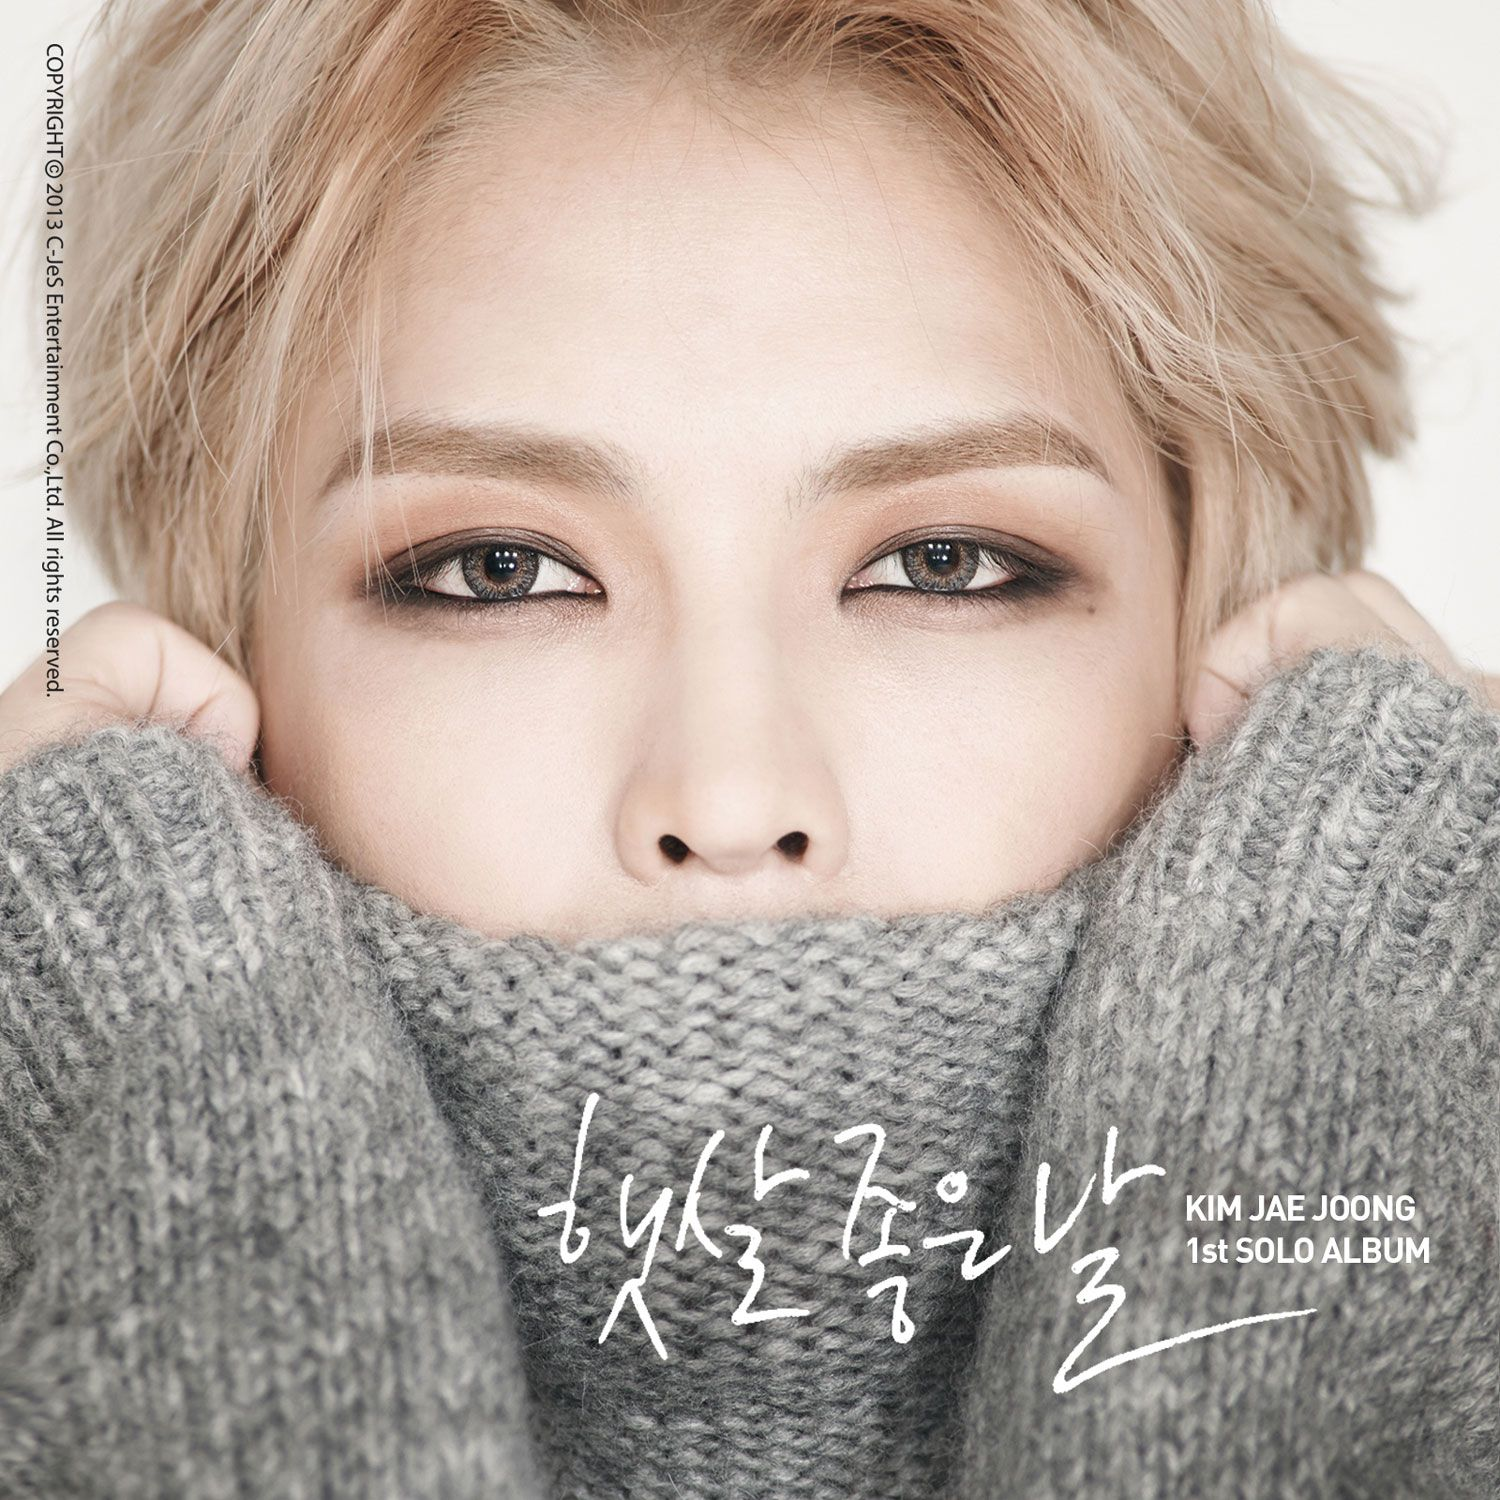 [Single] Kim Jae Joong (JYJ) - Sunny Day